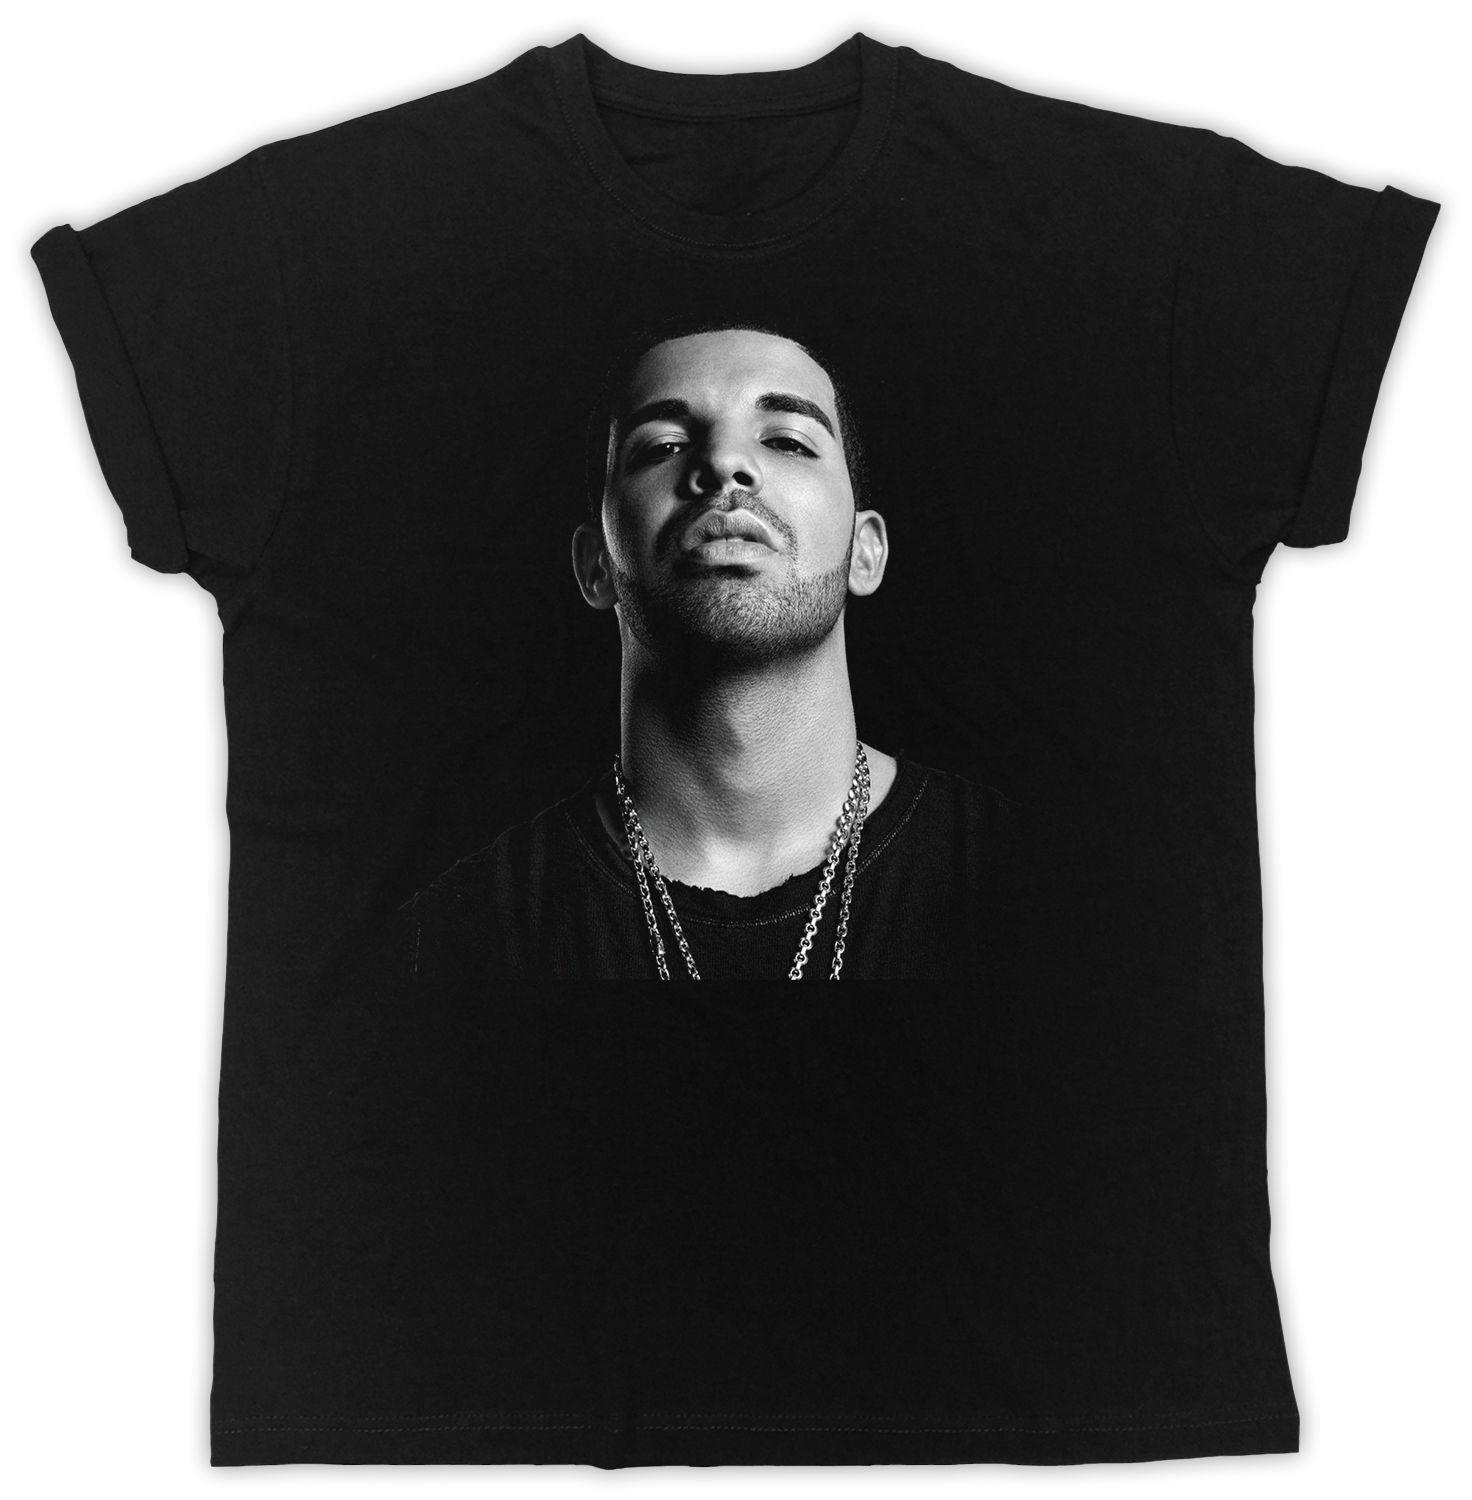 758dce6526017 DRAKE COOL RETRO IDEAL GIFT BIRTHDAY PRESENT SHORT SLEEVE UNISEX BLACK  TSHIRT Short Sleeve Plus Size T Shirt One Day Only T Shirts Limited T Shirts  24 Hours ...